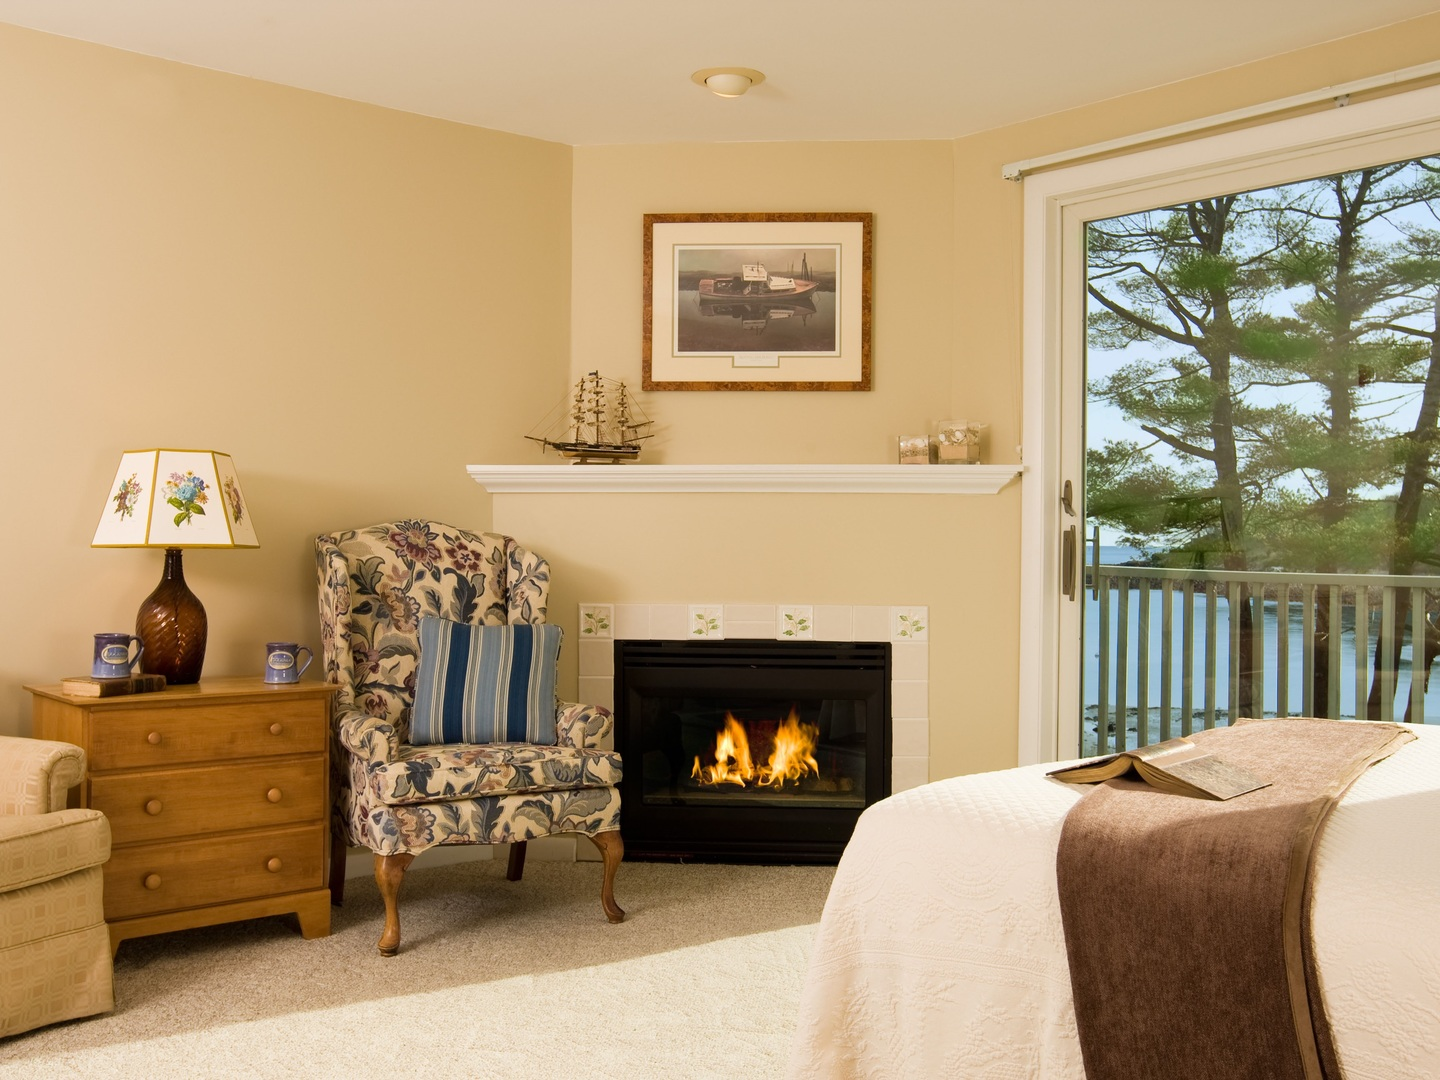 A living room filled with furniture and a fireplace at Dockside Guest Quarters.